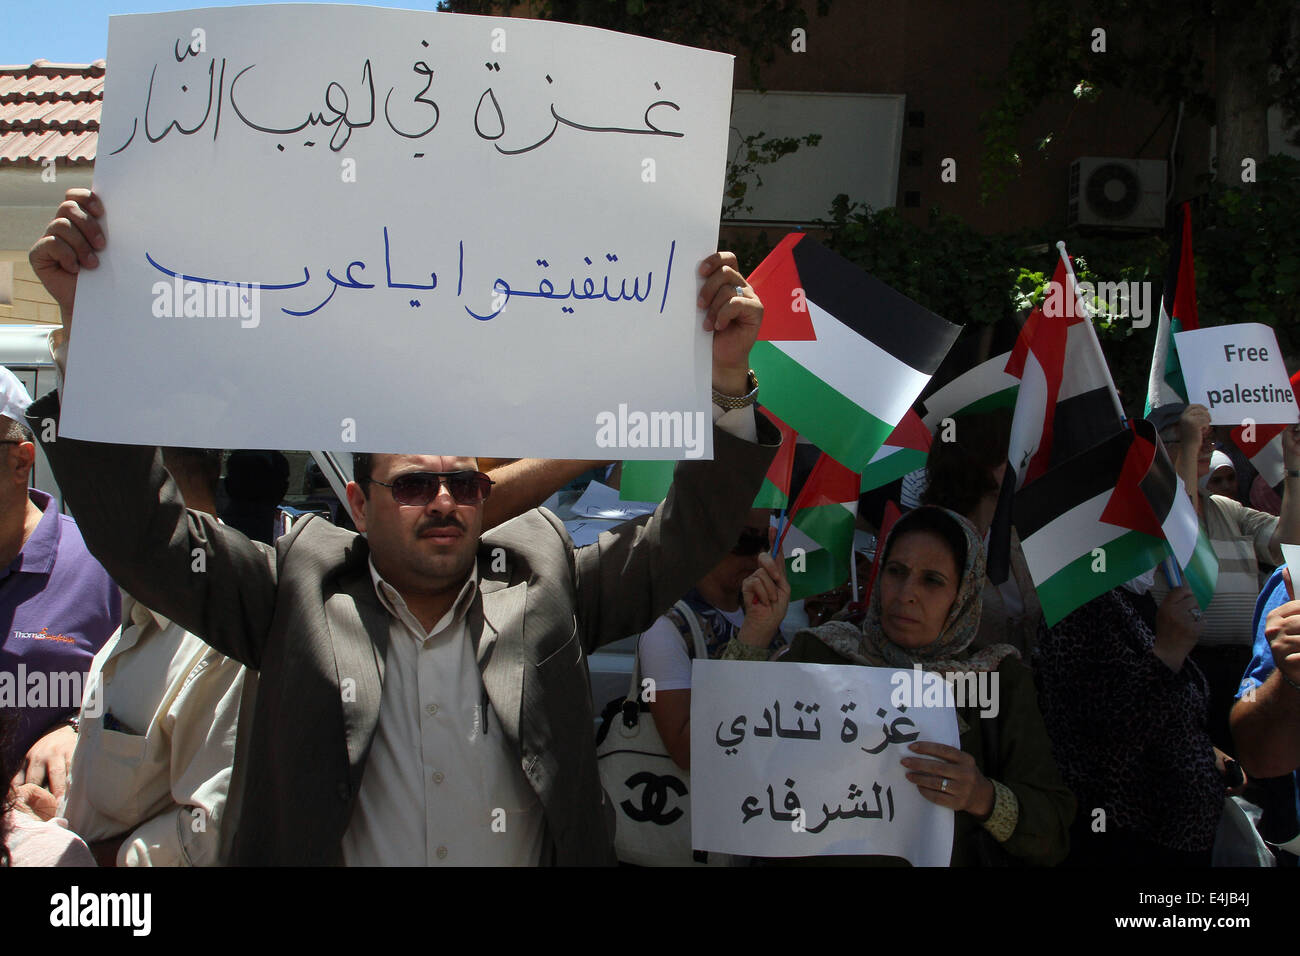 Damascus. 13th July, 2014. Hundreds of Syrian protesters hold anti-Israel banners as well as the Syrian and Palestinian - Stock Image